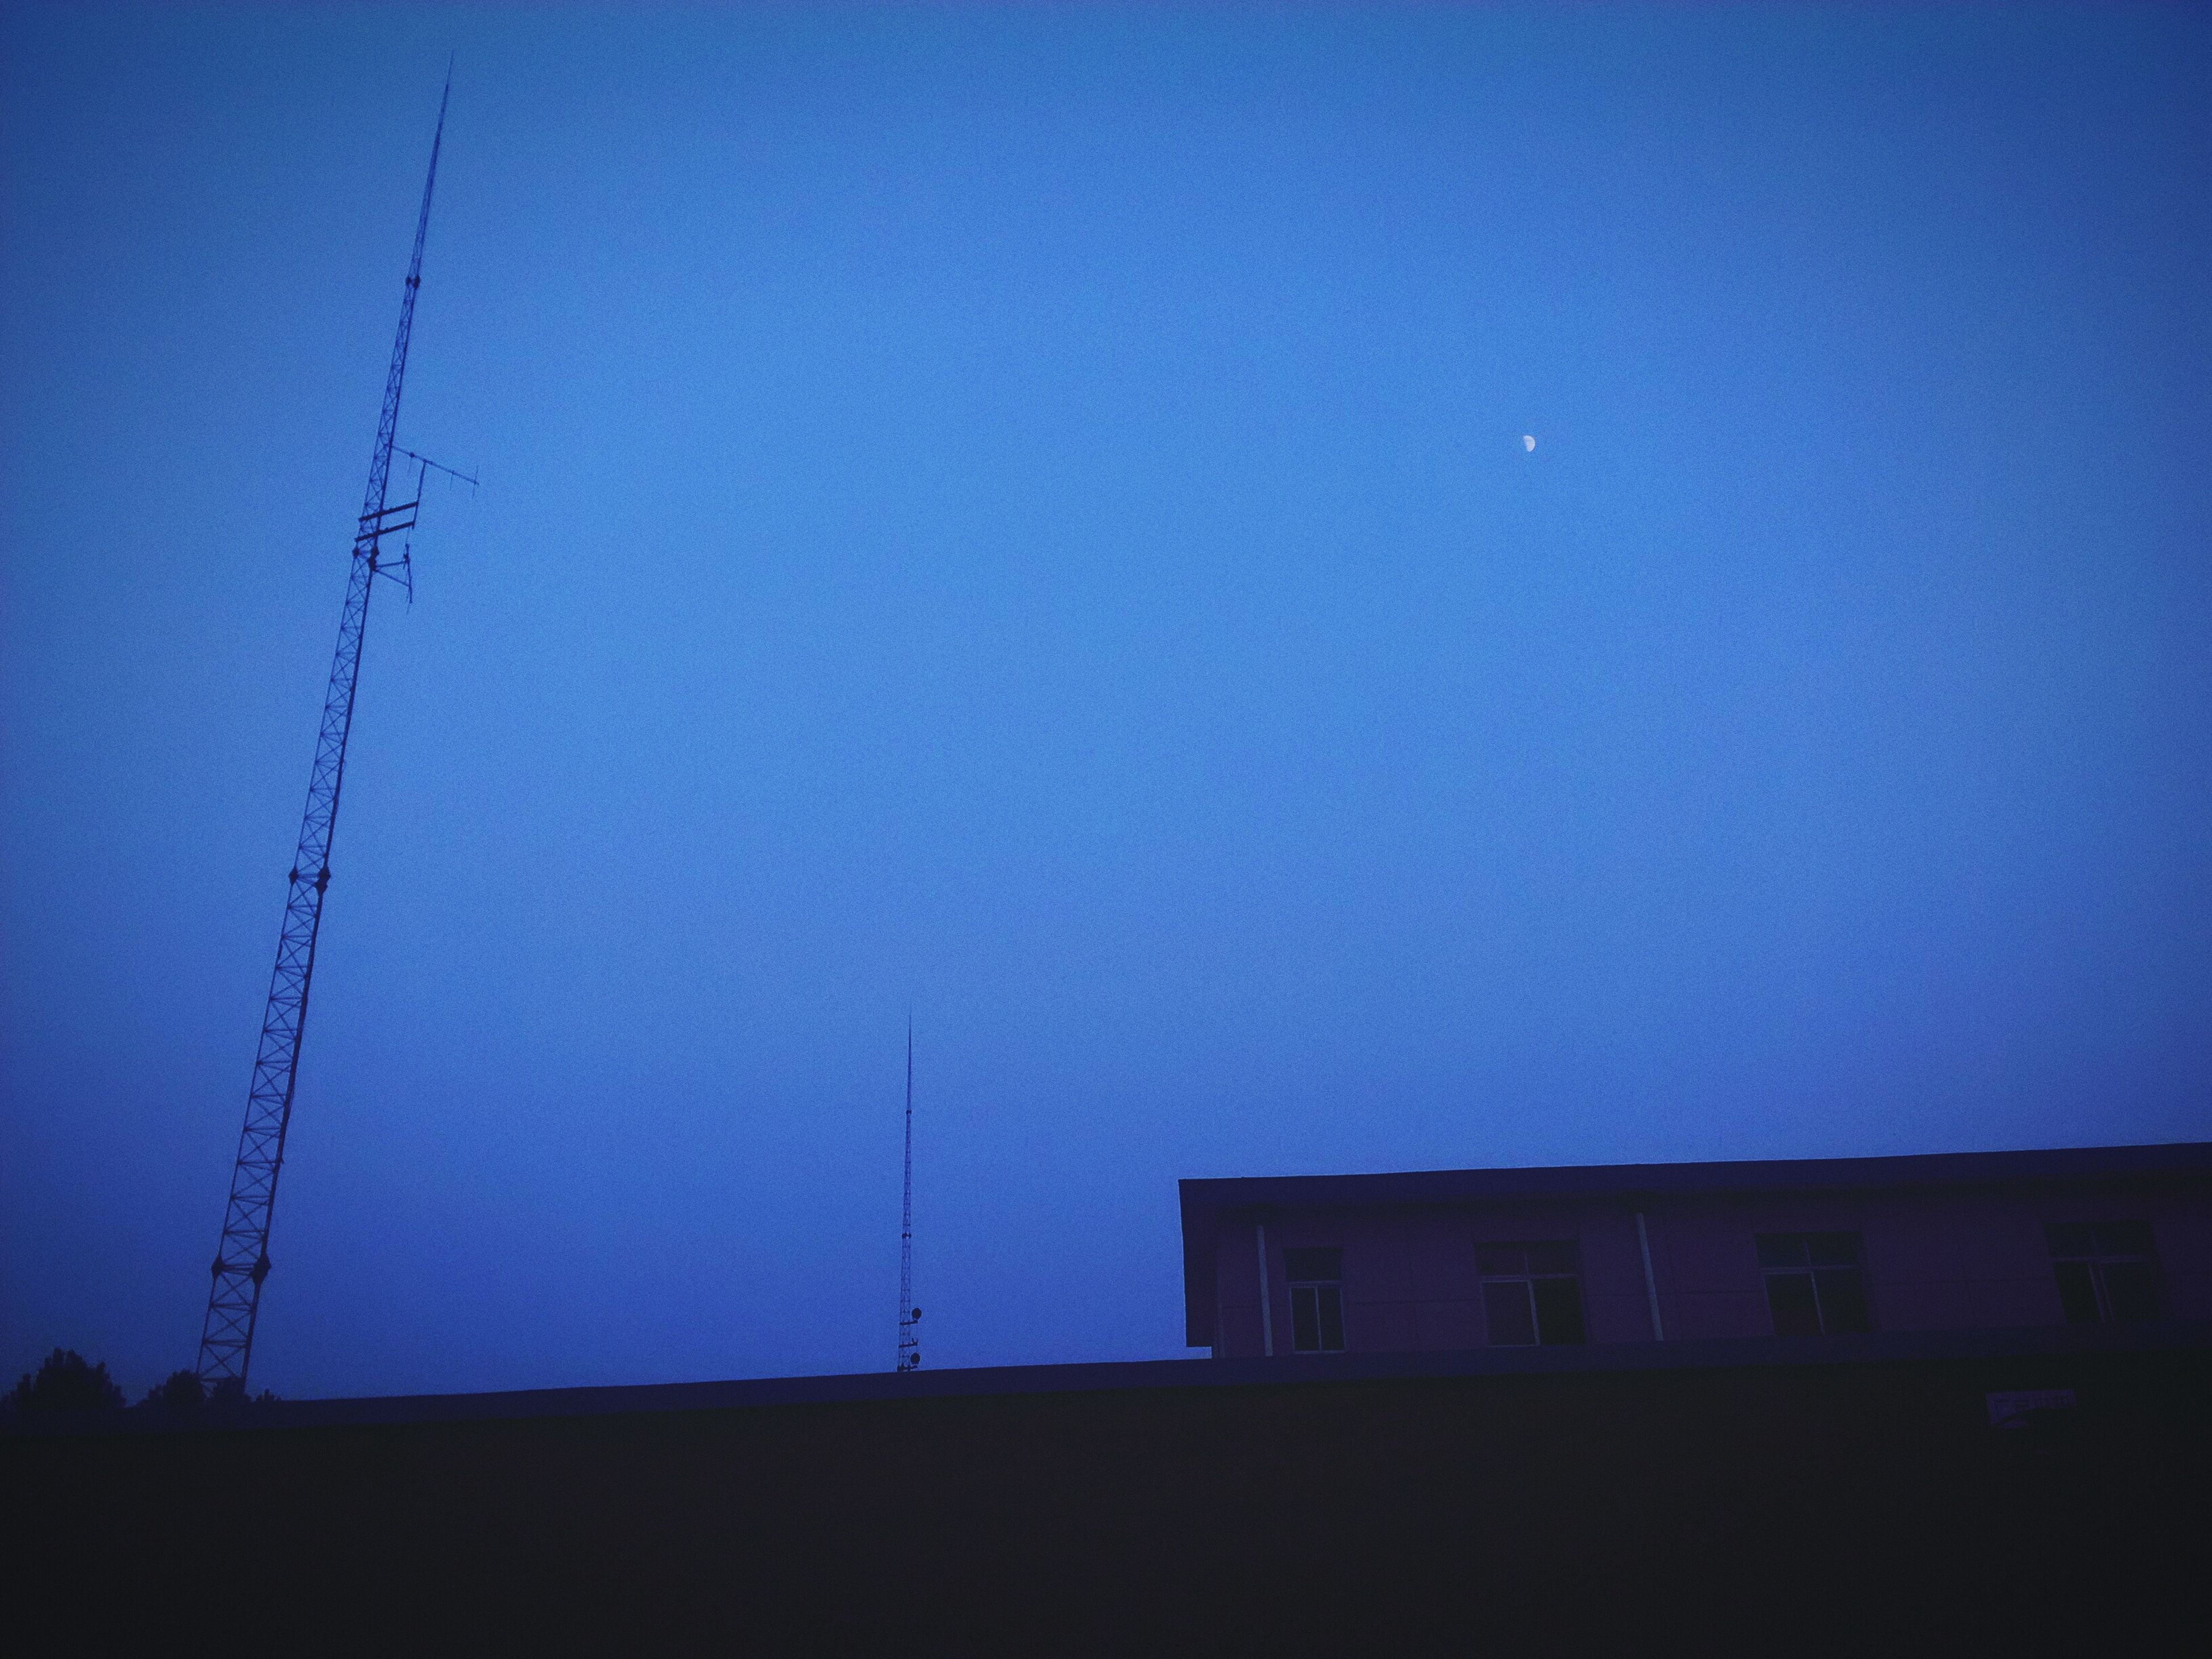 power line, electricity, electricity pylon, low angle view, built structure, clear sky, copy space, power supply, building exterior, architecture, cable, silhouette, blue, connection, fuel and power generation, dusk, technology, sky, house, power cable